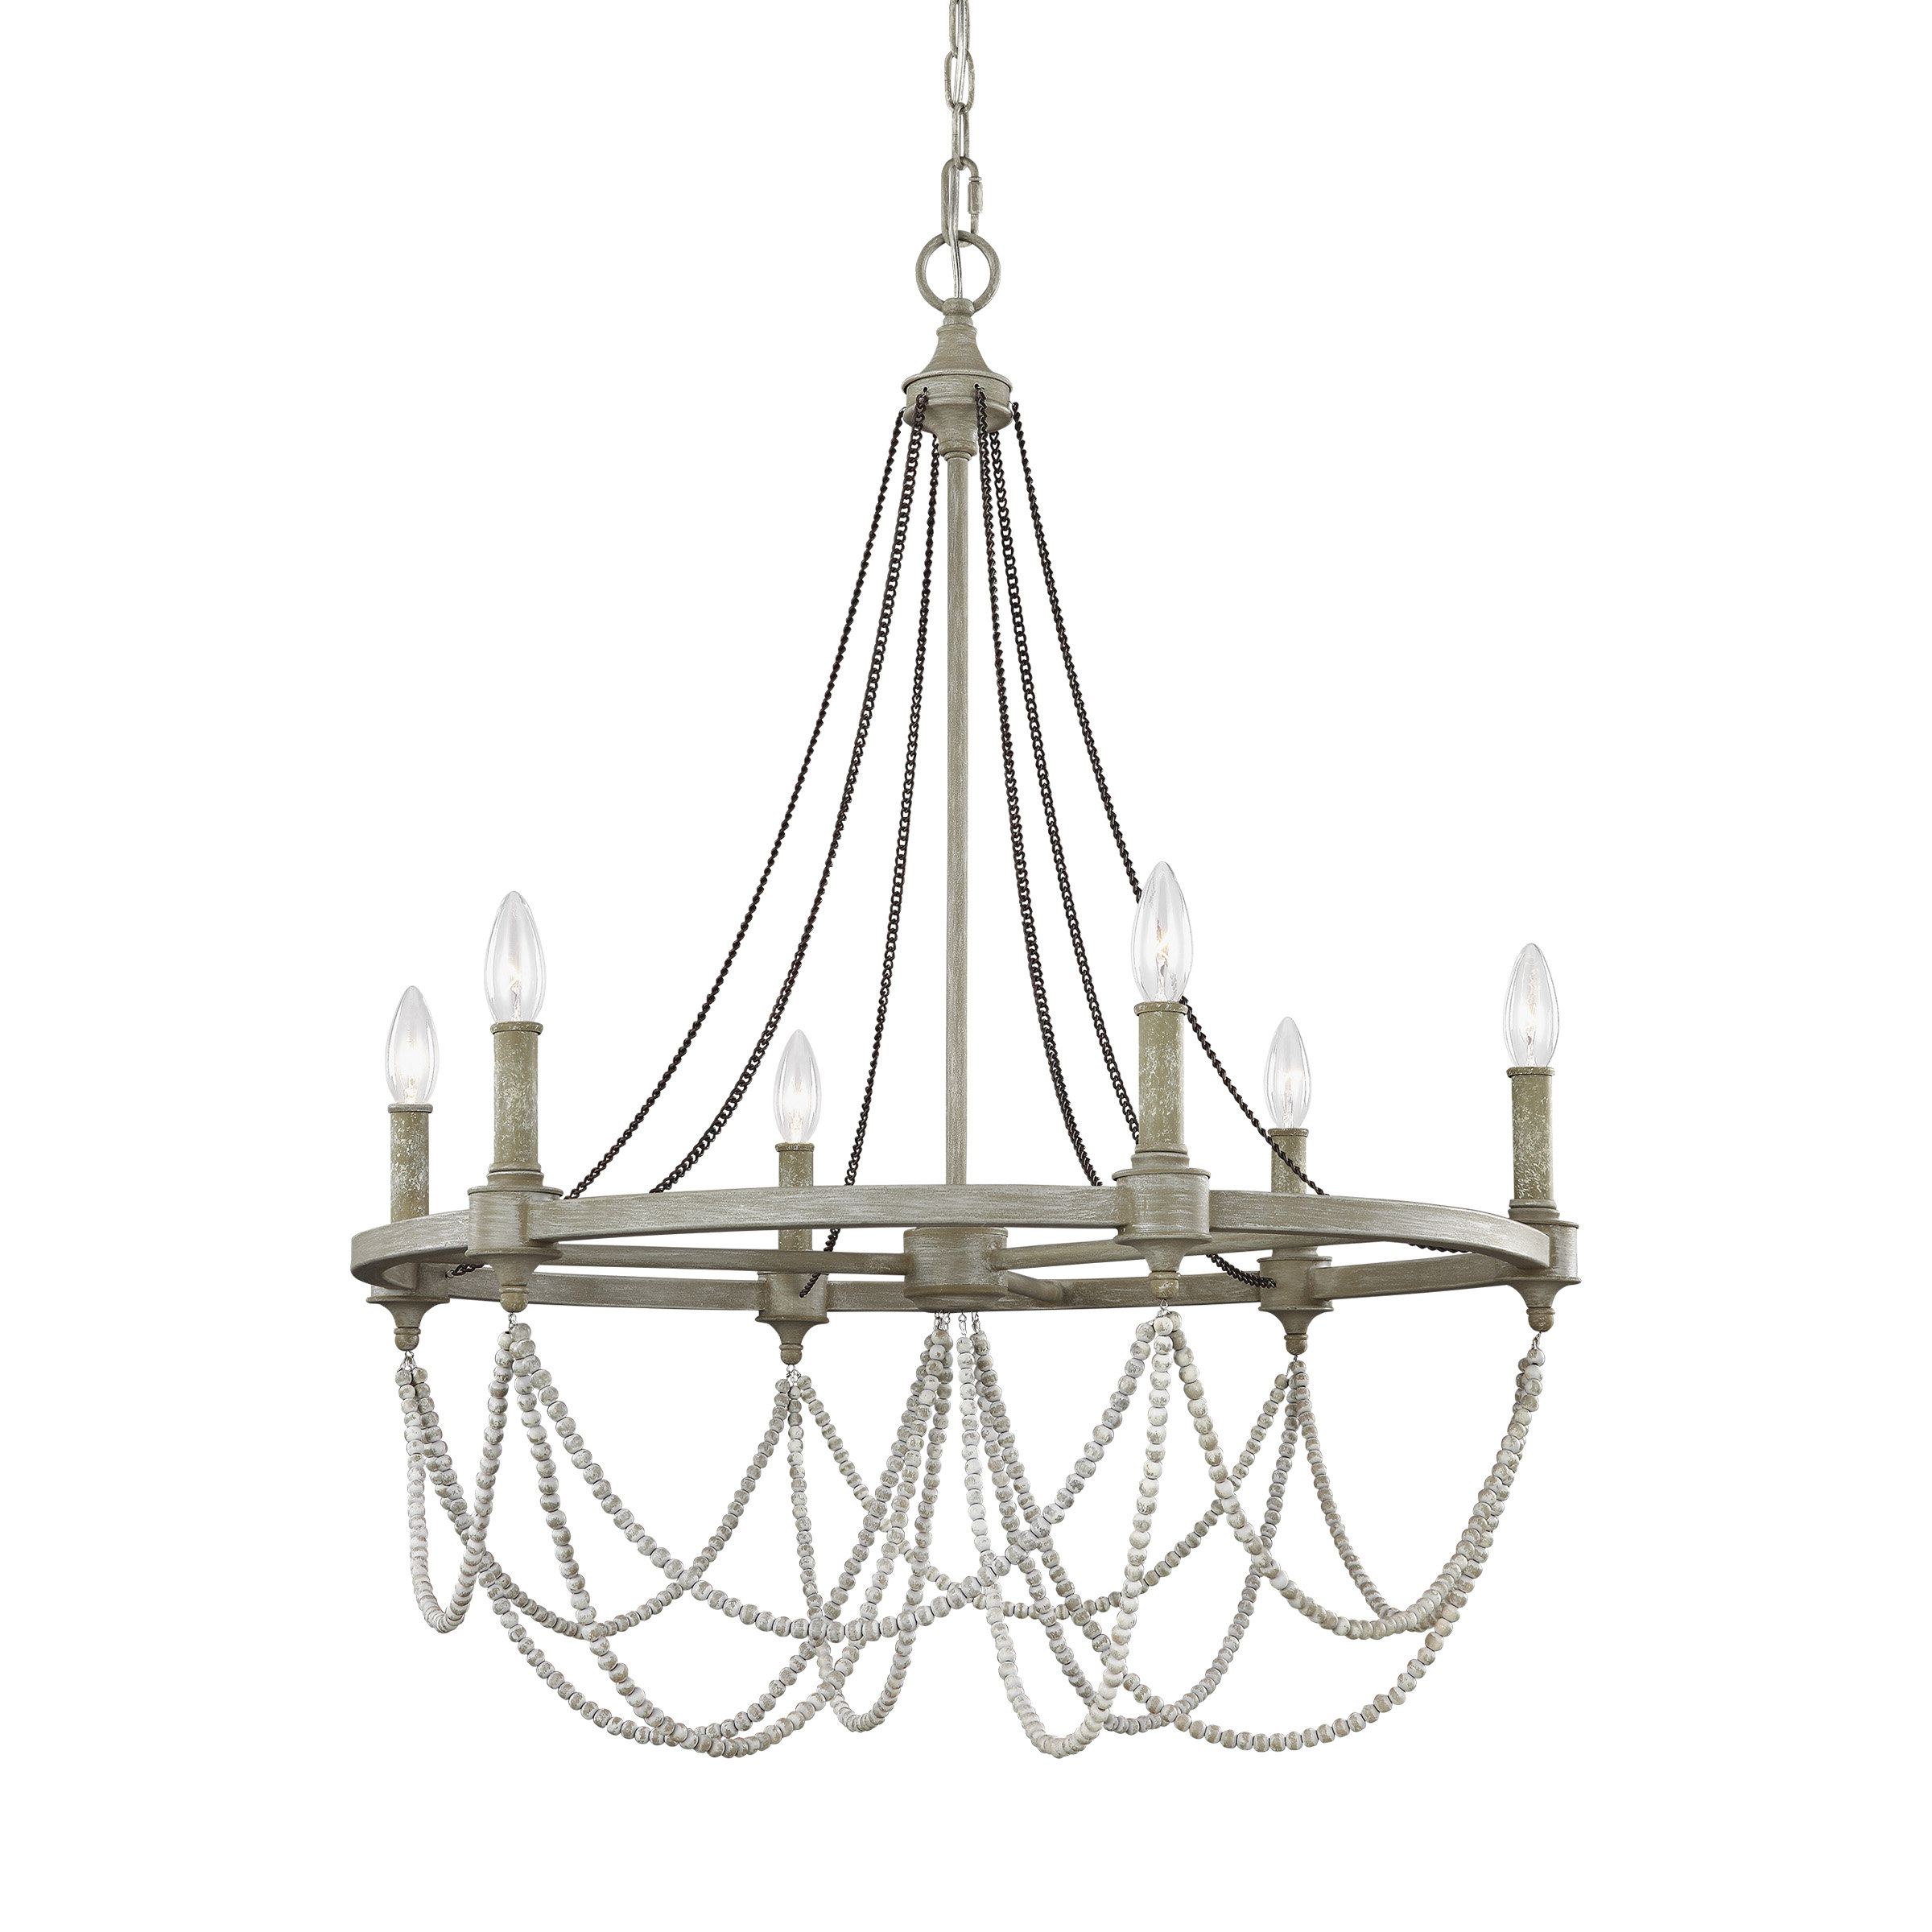 Fitzgibbon 6 Light Candle Style Chandelier With Regard To 2020 Diaz 6 Light Candle Style Chandeliers (View 5 of 20)